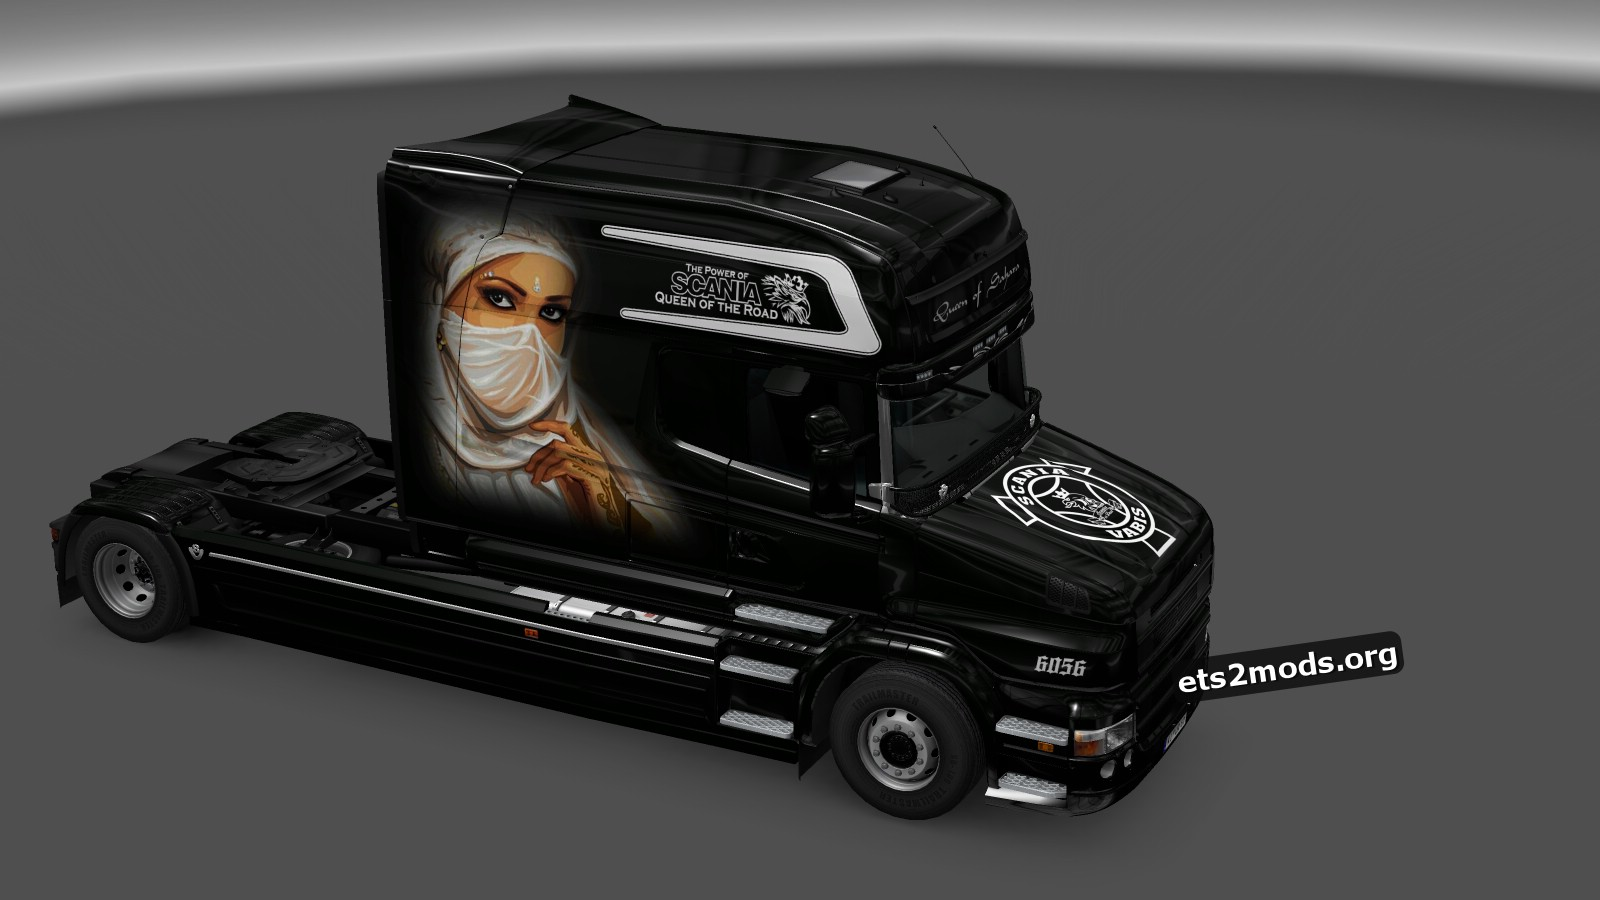 Sahara Queen Skin for Scania T